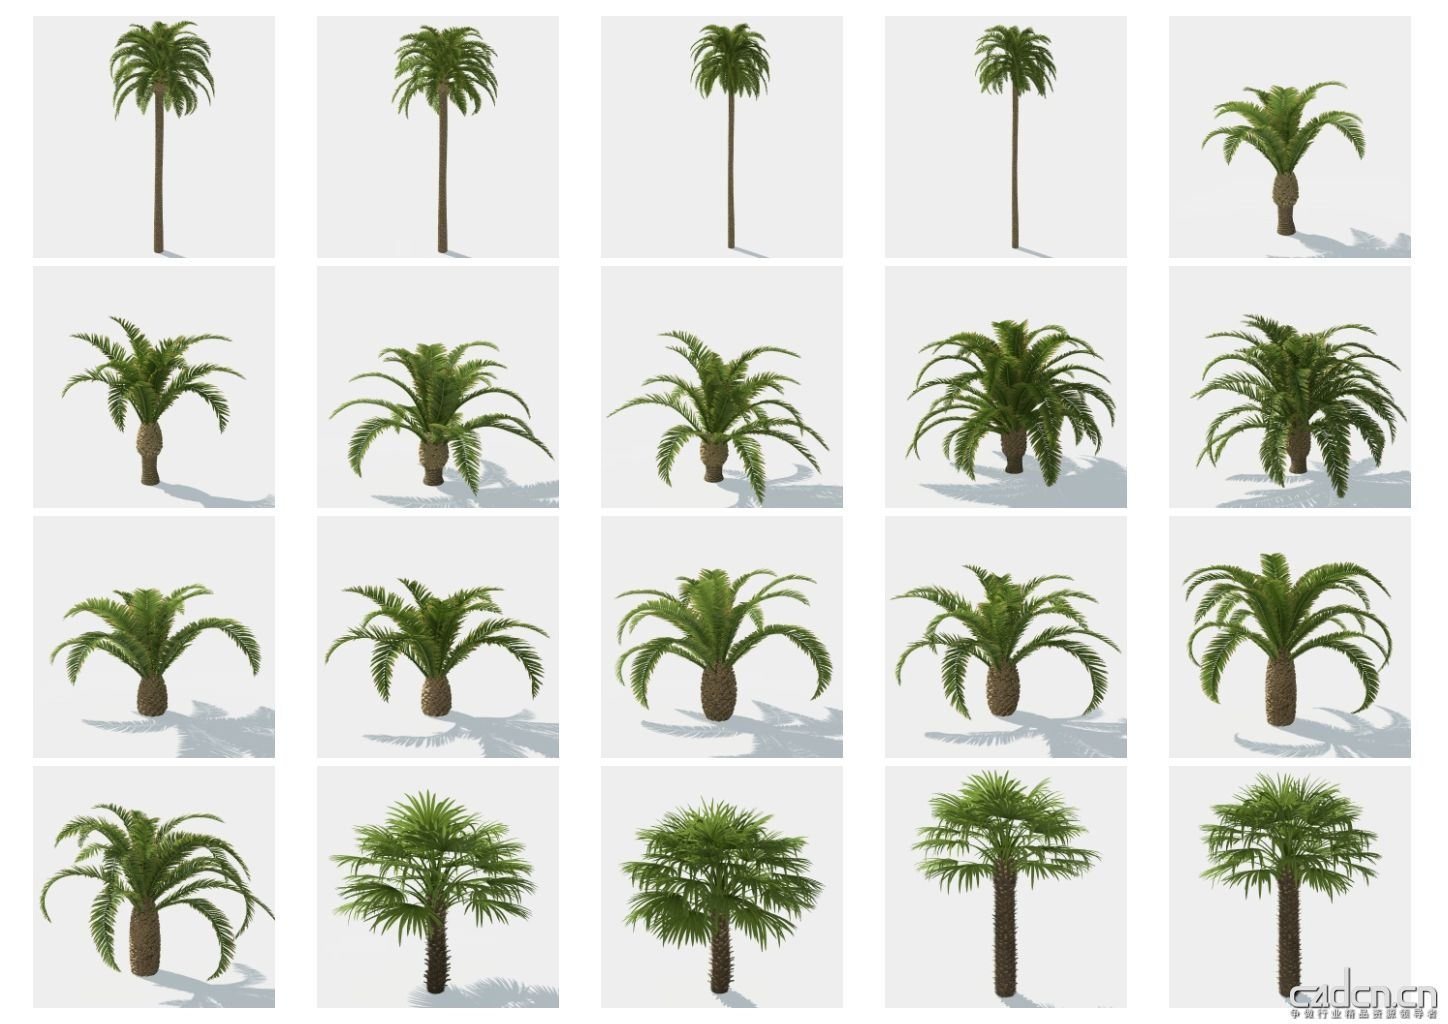 hq_palms_vol1_Contact-Sheet-3.jpg